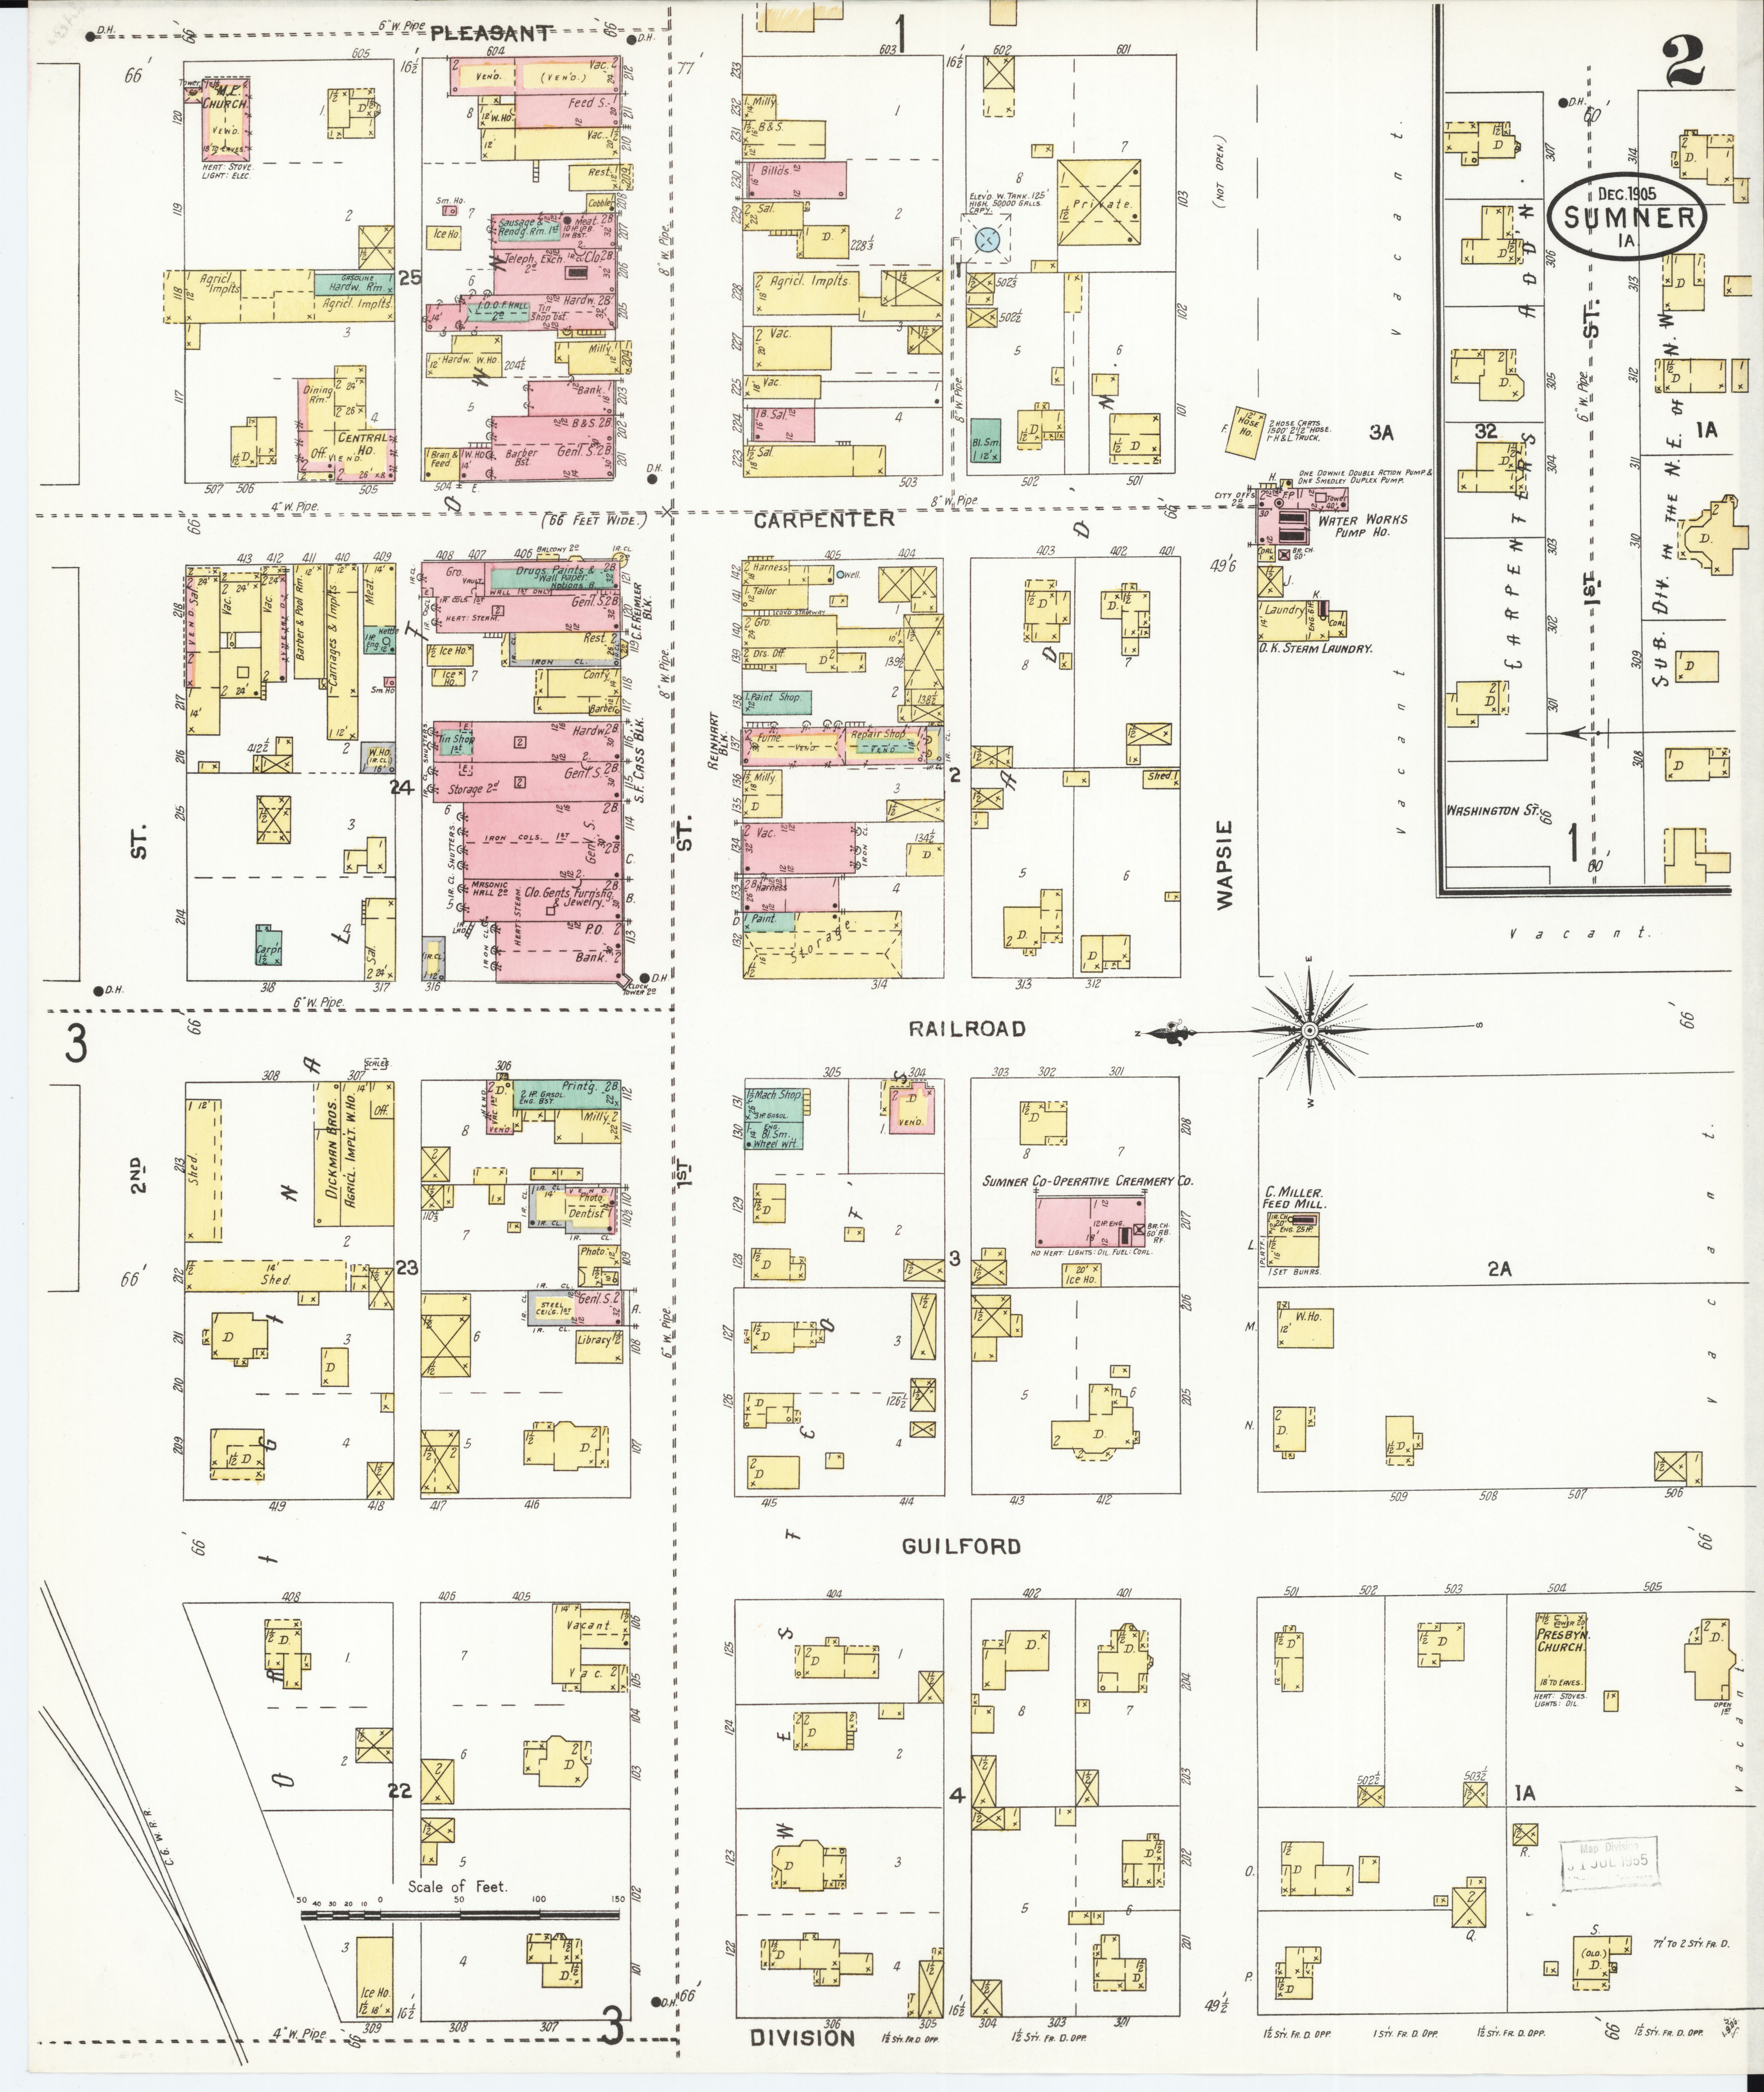 File:Sanborn Fire Insurance Map from Sumner, Bremer County